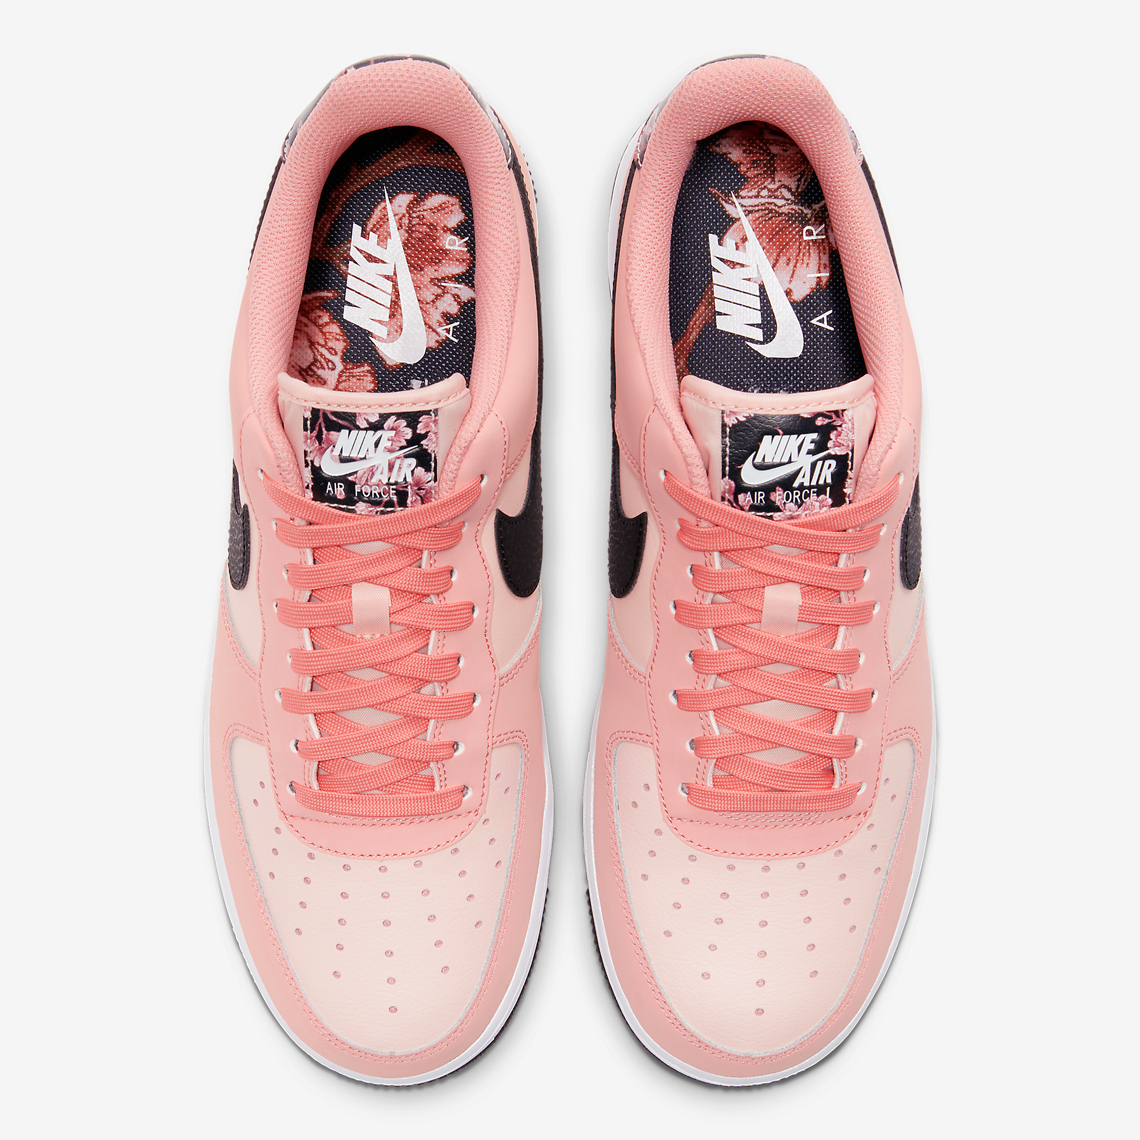 Nike Air Force 1 Low CU6649 100 Release Info |